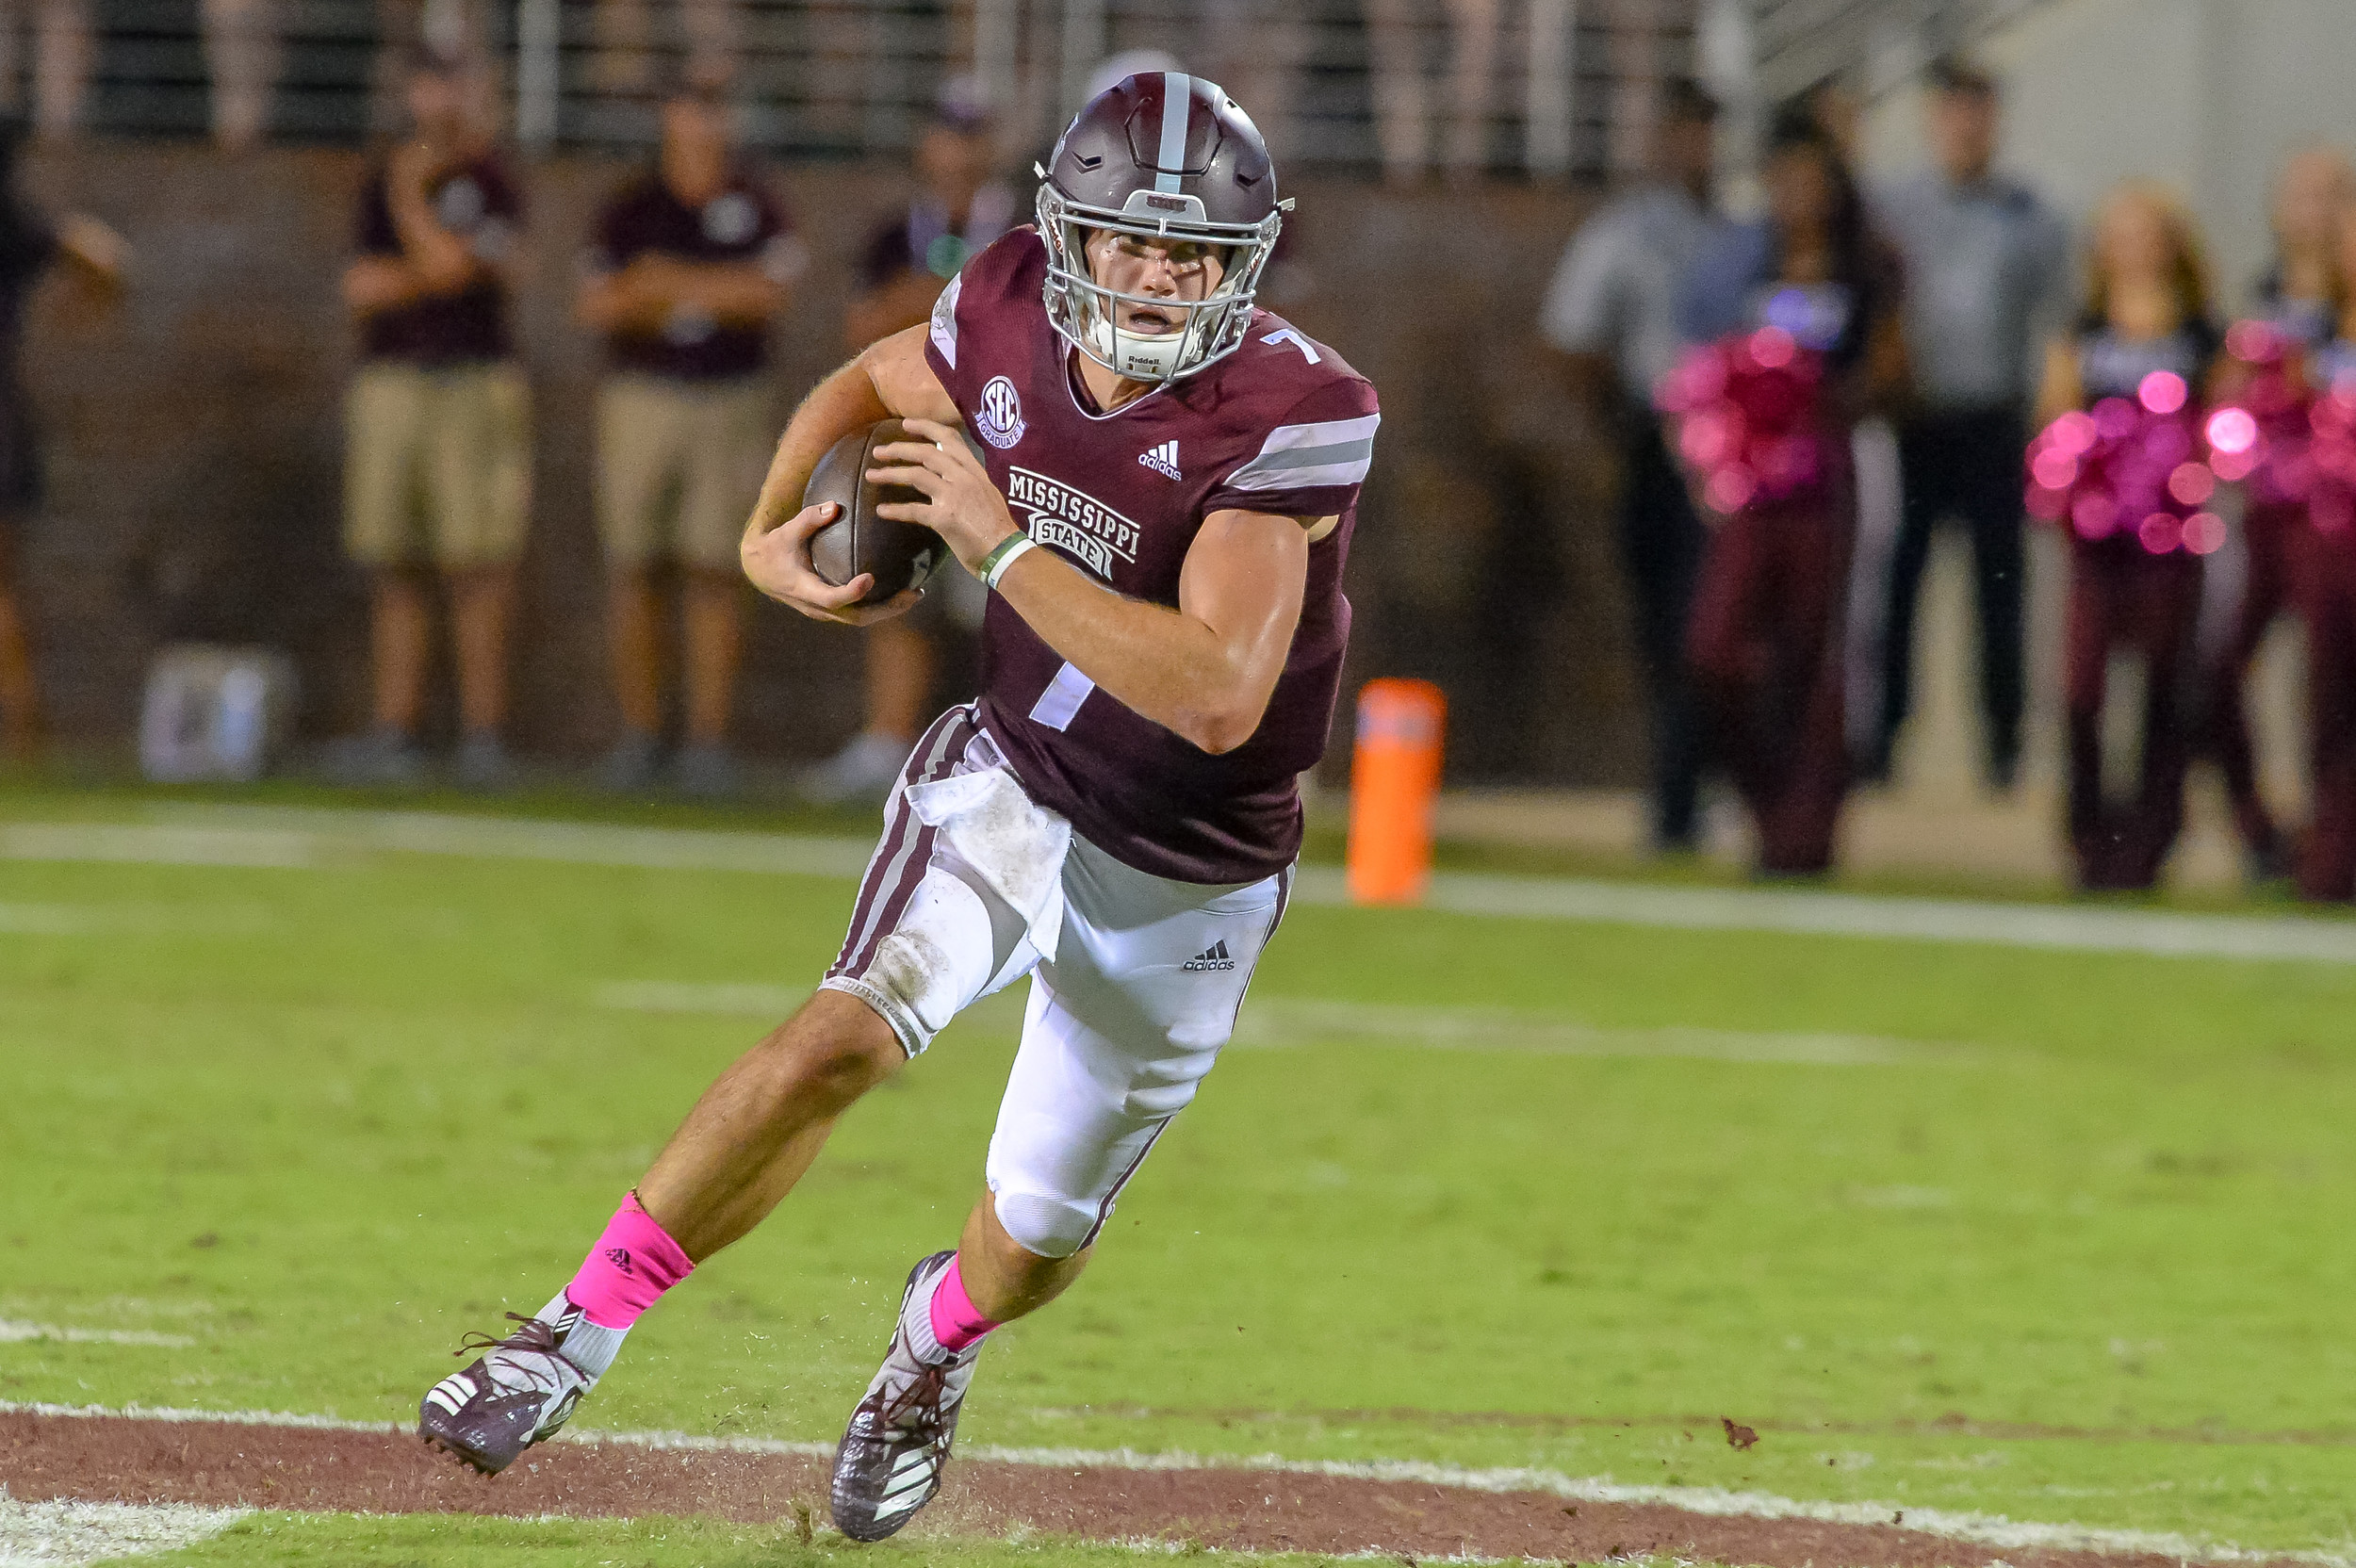 Mississippi State Bulldogs quarterback Nick Fitzgerald (7) runs during the second half of Saturday's game, at Davis Wade Stadium in Starkville, MS. Daily Mountain Eagle -  Jeff Johnsey